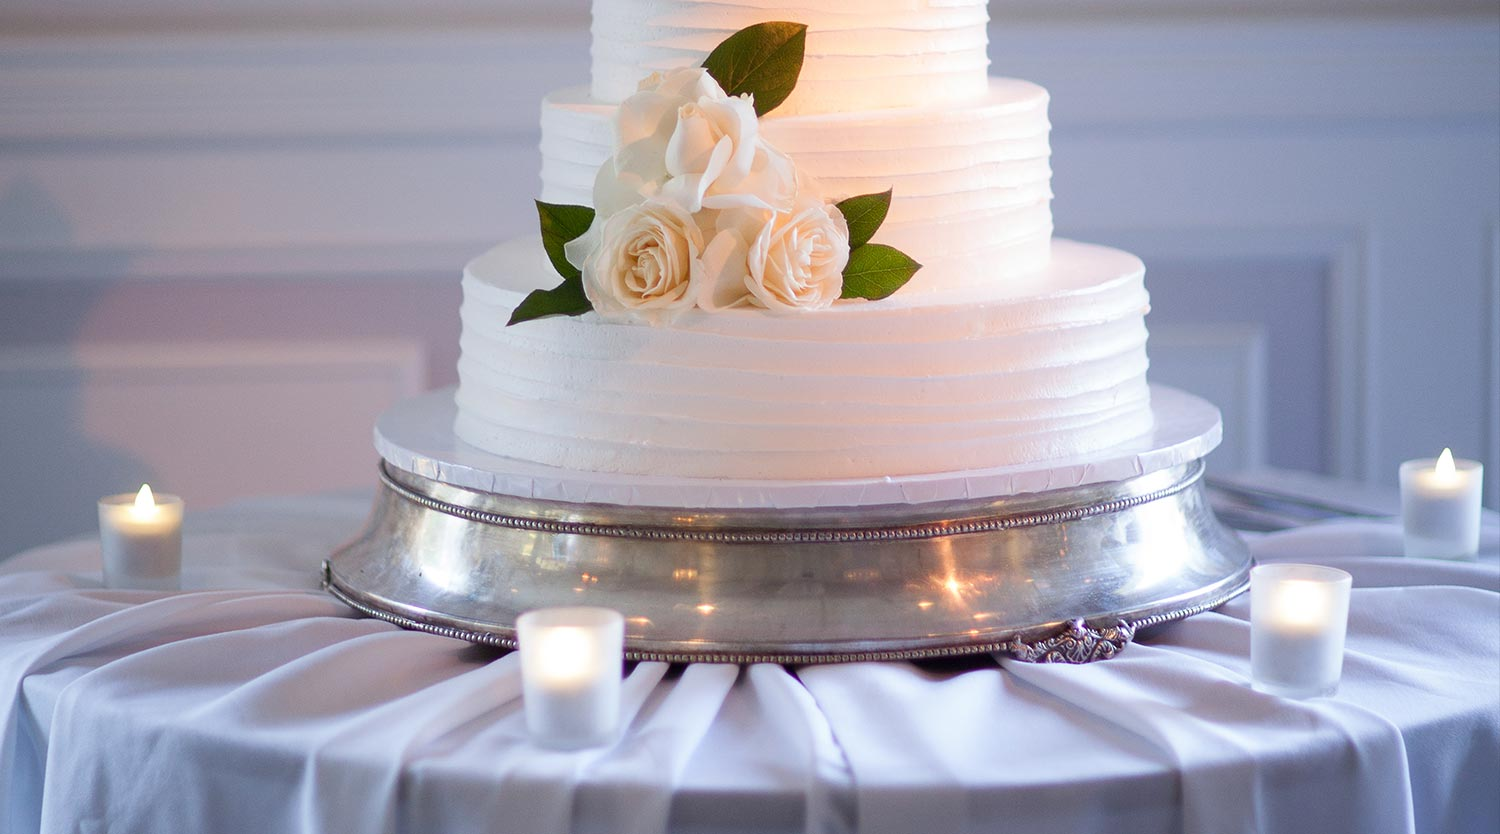 Photo: close up clean white wedding cake with white flowers